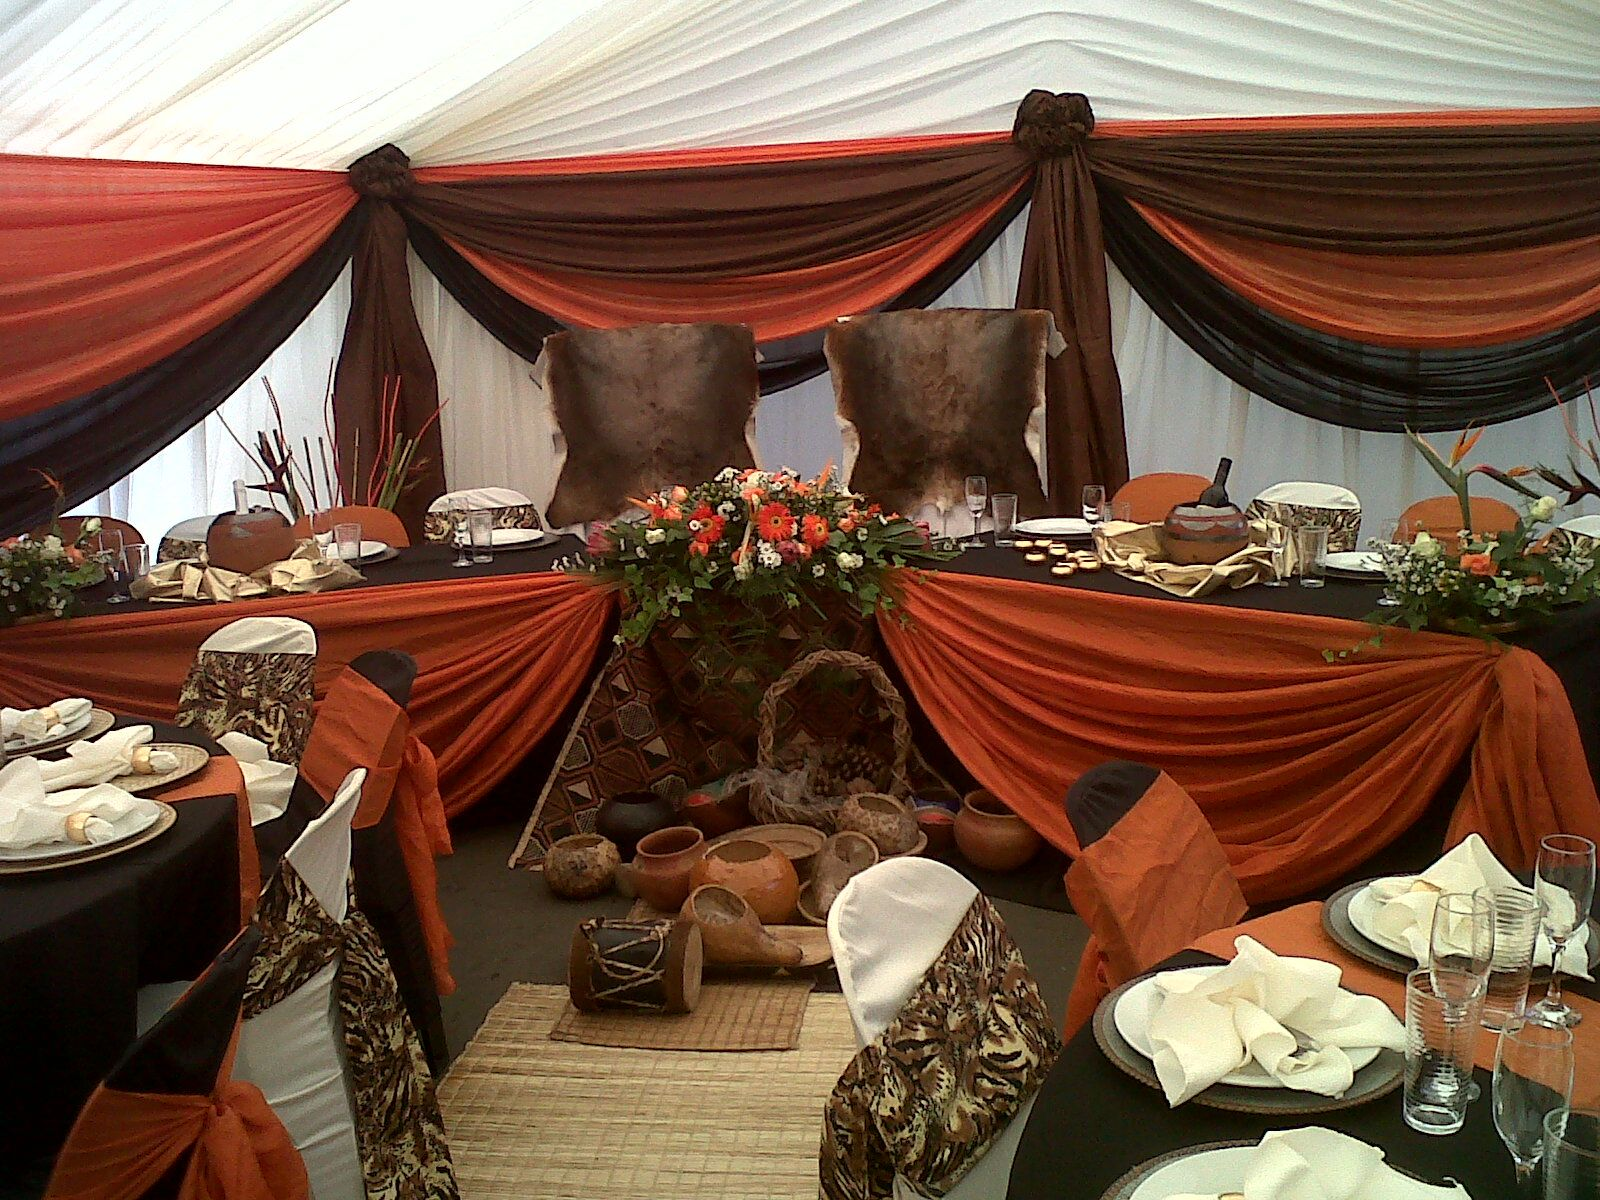 Zulu wedding decor pictures google search a girl has to dream zulu wedding decor pictures google search junglespirit